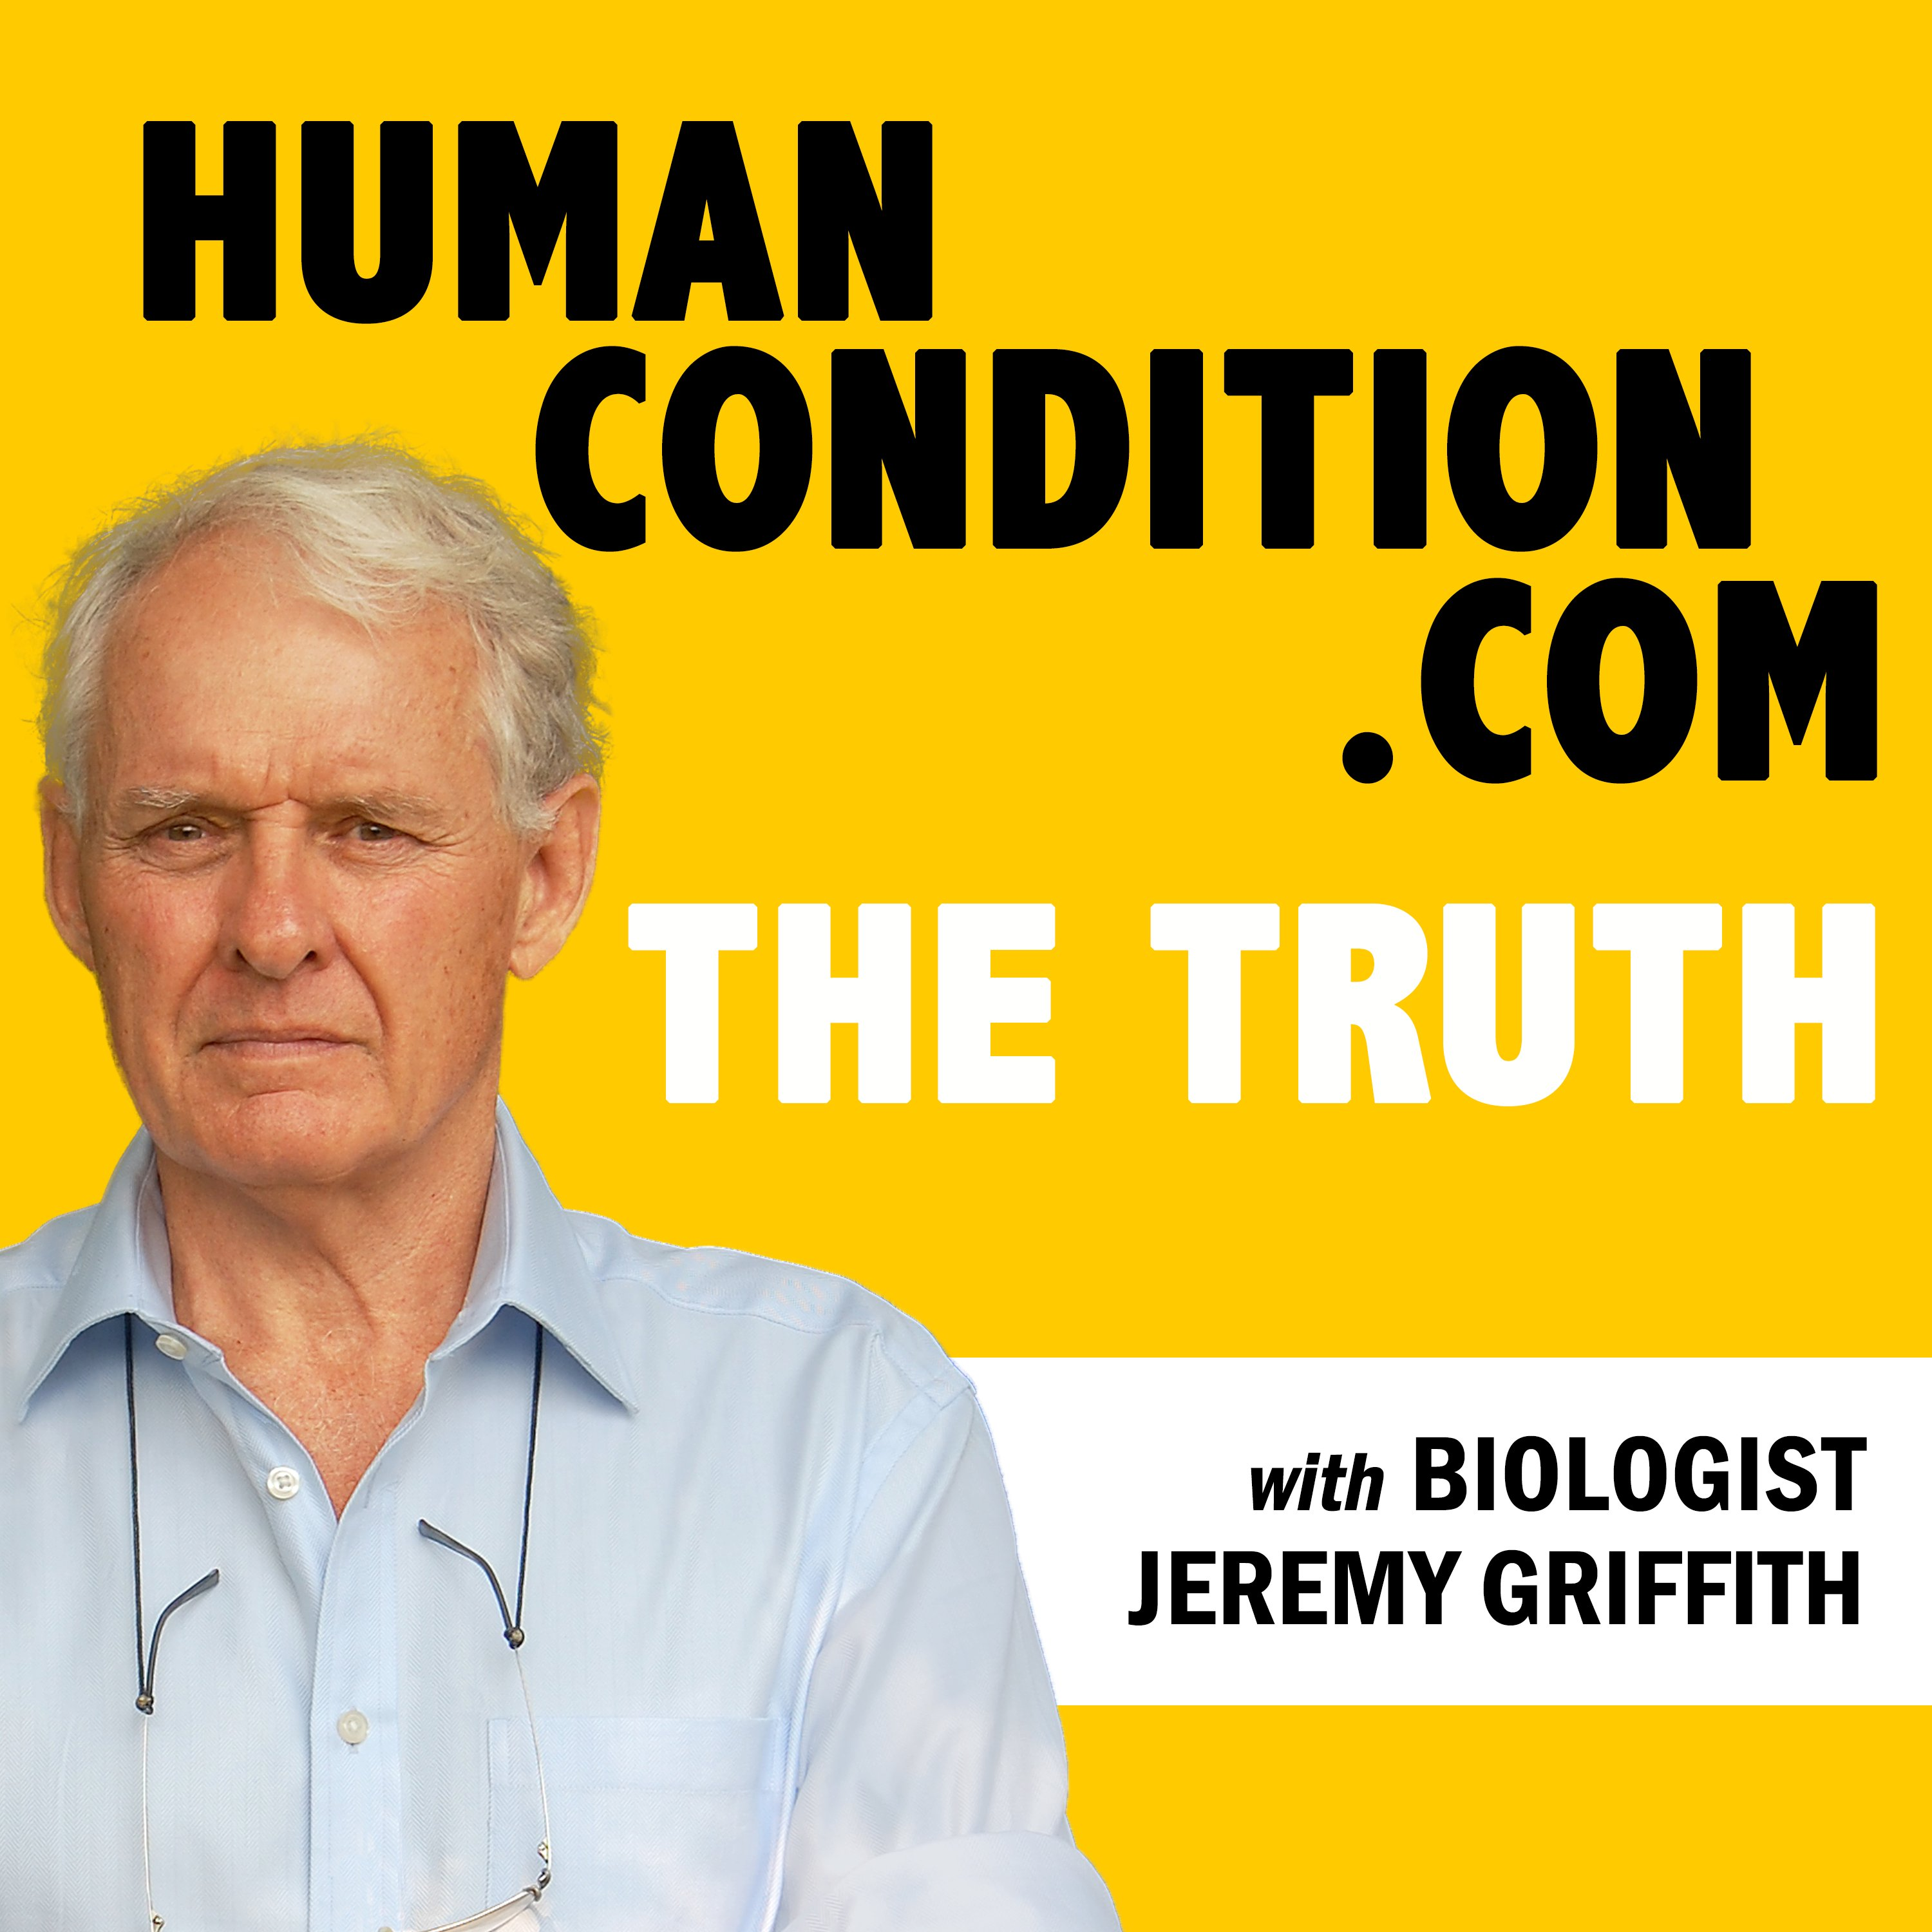 Poster saying HumanCondition.com - The Truth with Biologist Jeremy Griffith